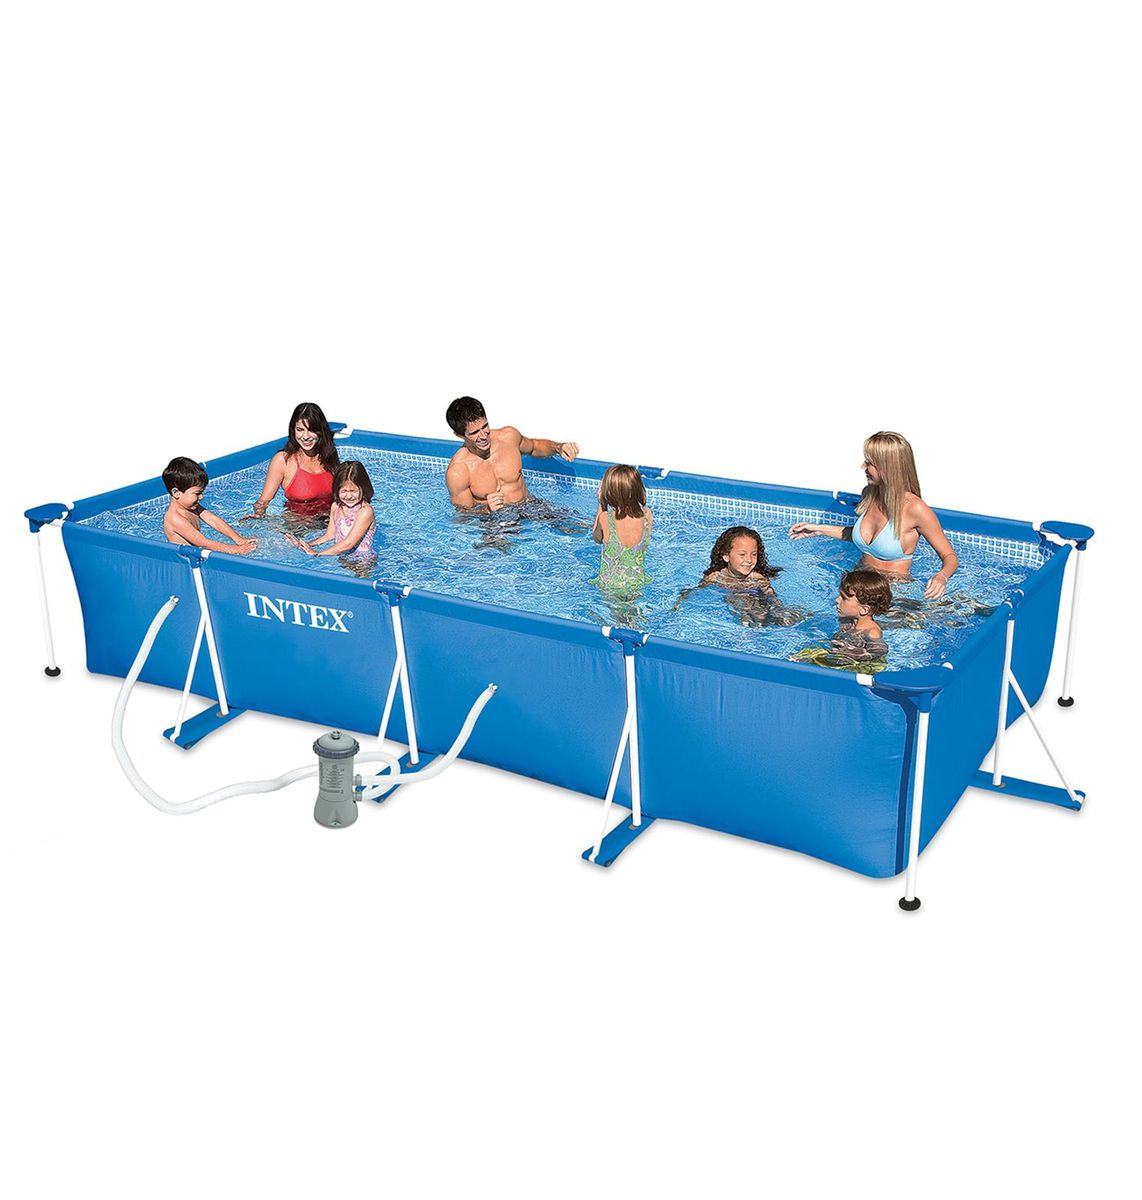 PISCINE INTEX METAL FRAME JUNIOR RECT. 4,50x2,20 H 0,84